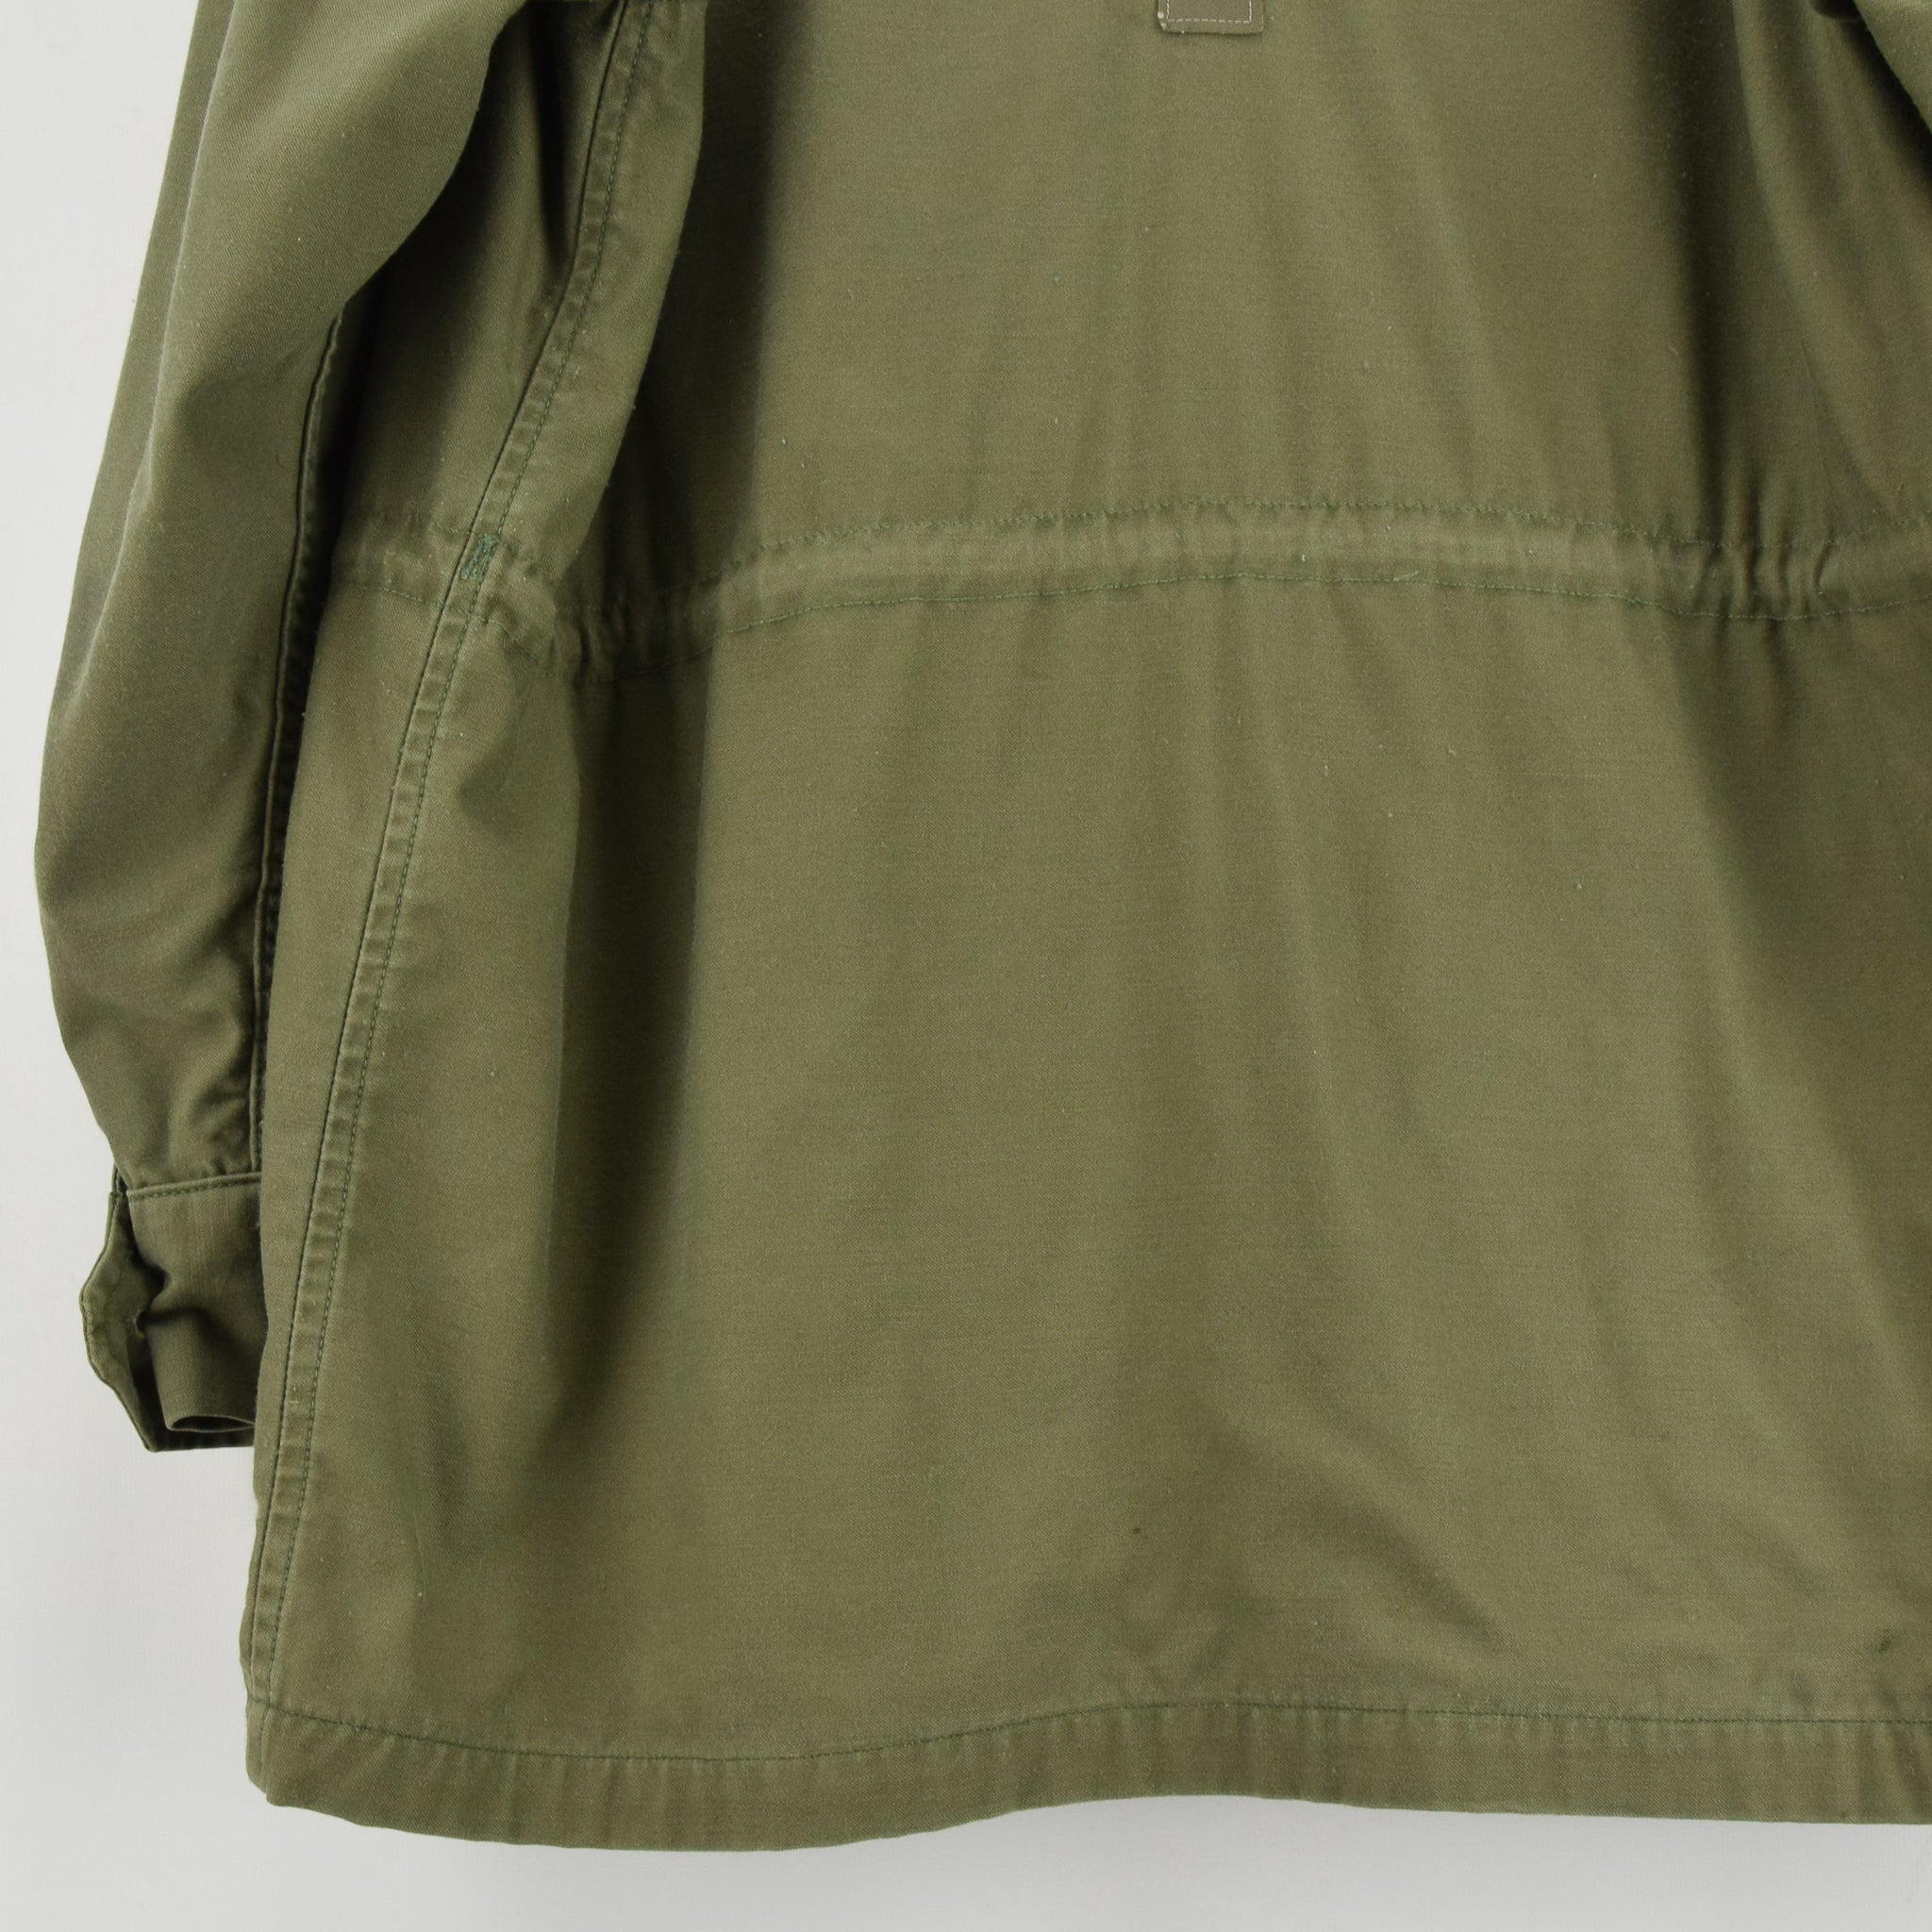 Vintage 60s Vietnam War USAF Men's Wind Resistant Cotton Sateen Field Jacket S back hem